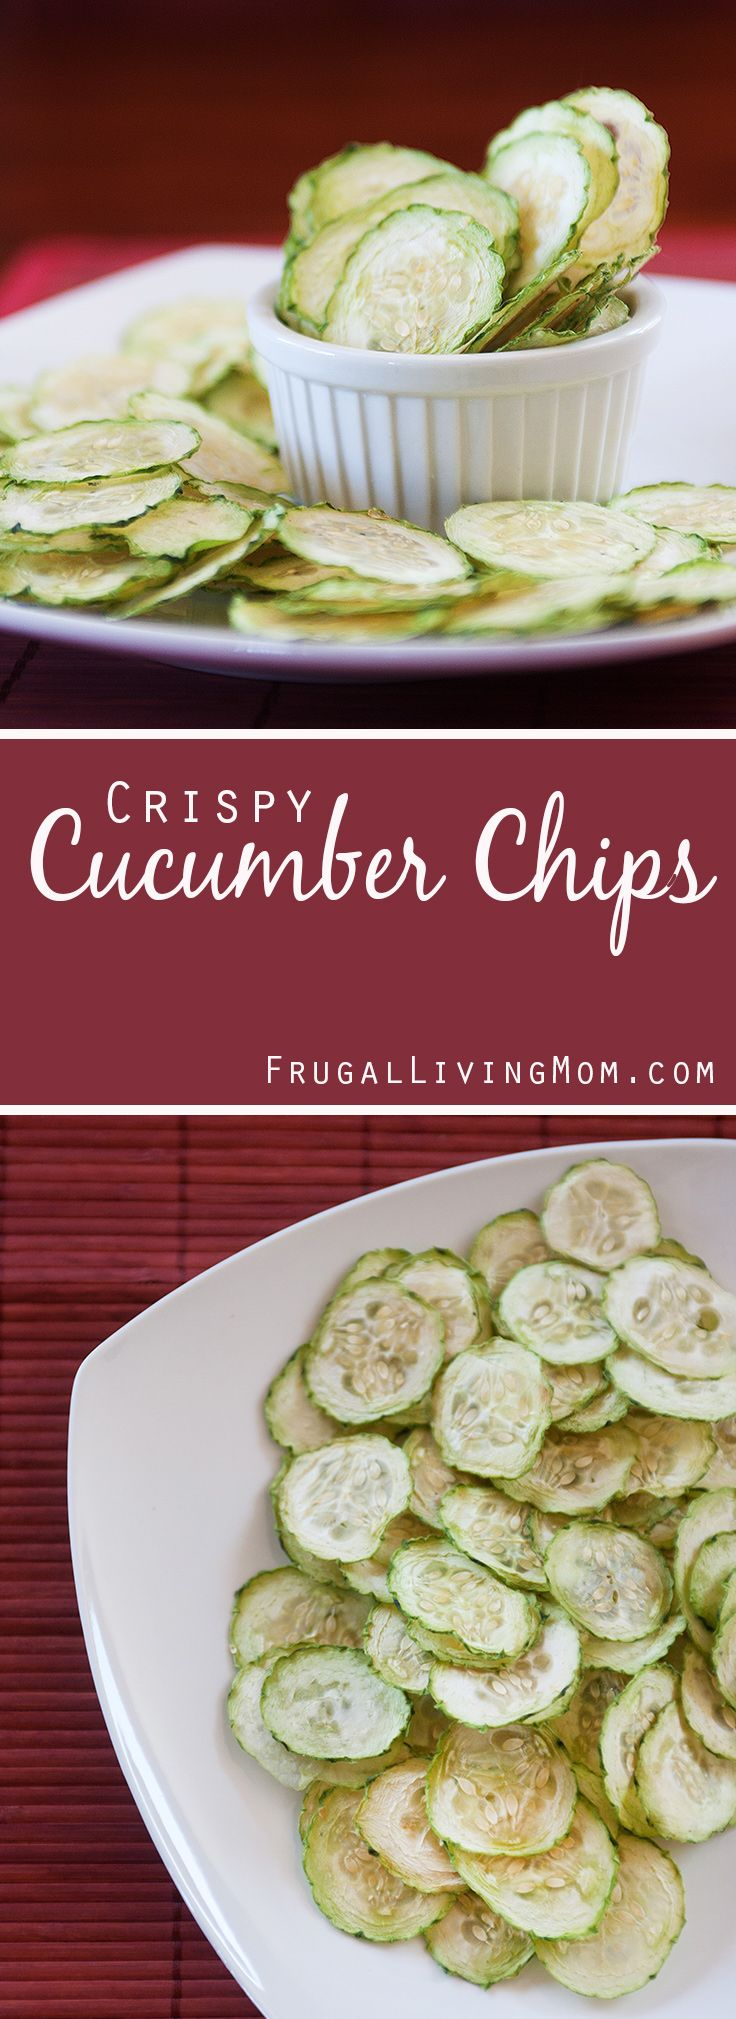 I have to try these Crispy Cucumber Chips! Great reason to pull out the dehydrator! Quick and easy Crispy Cucumber Chips - they only took about 10 minutes to prep, and they probably stay fresh for a few days but we ate them too fast to find out about their shelf life! :)